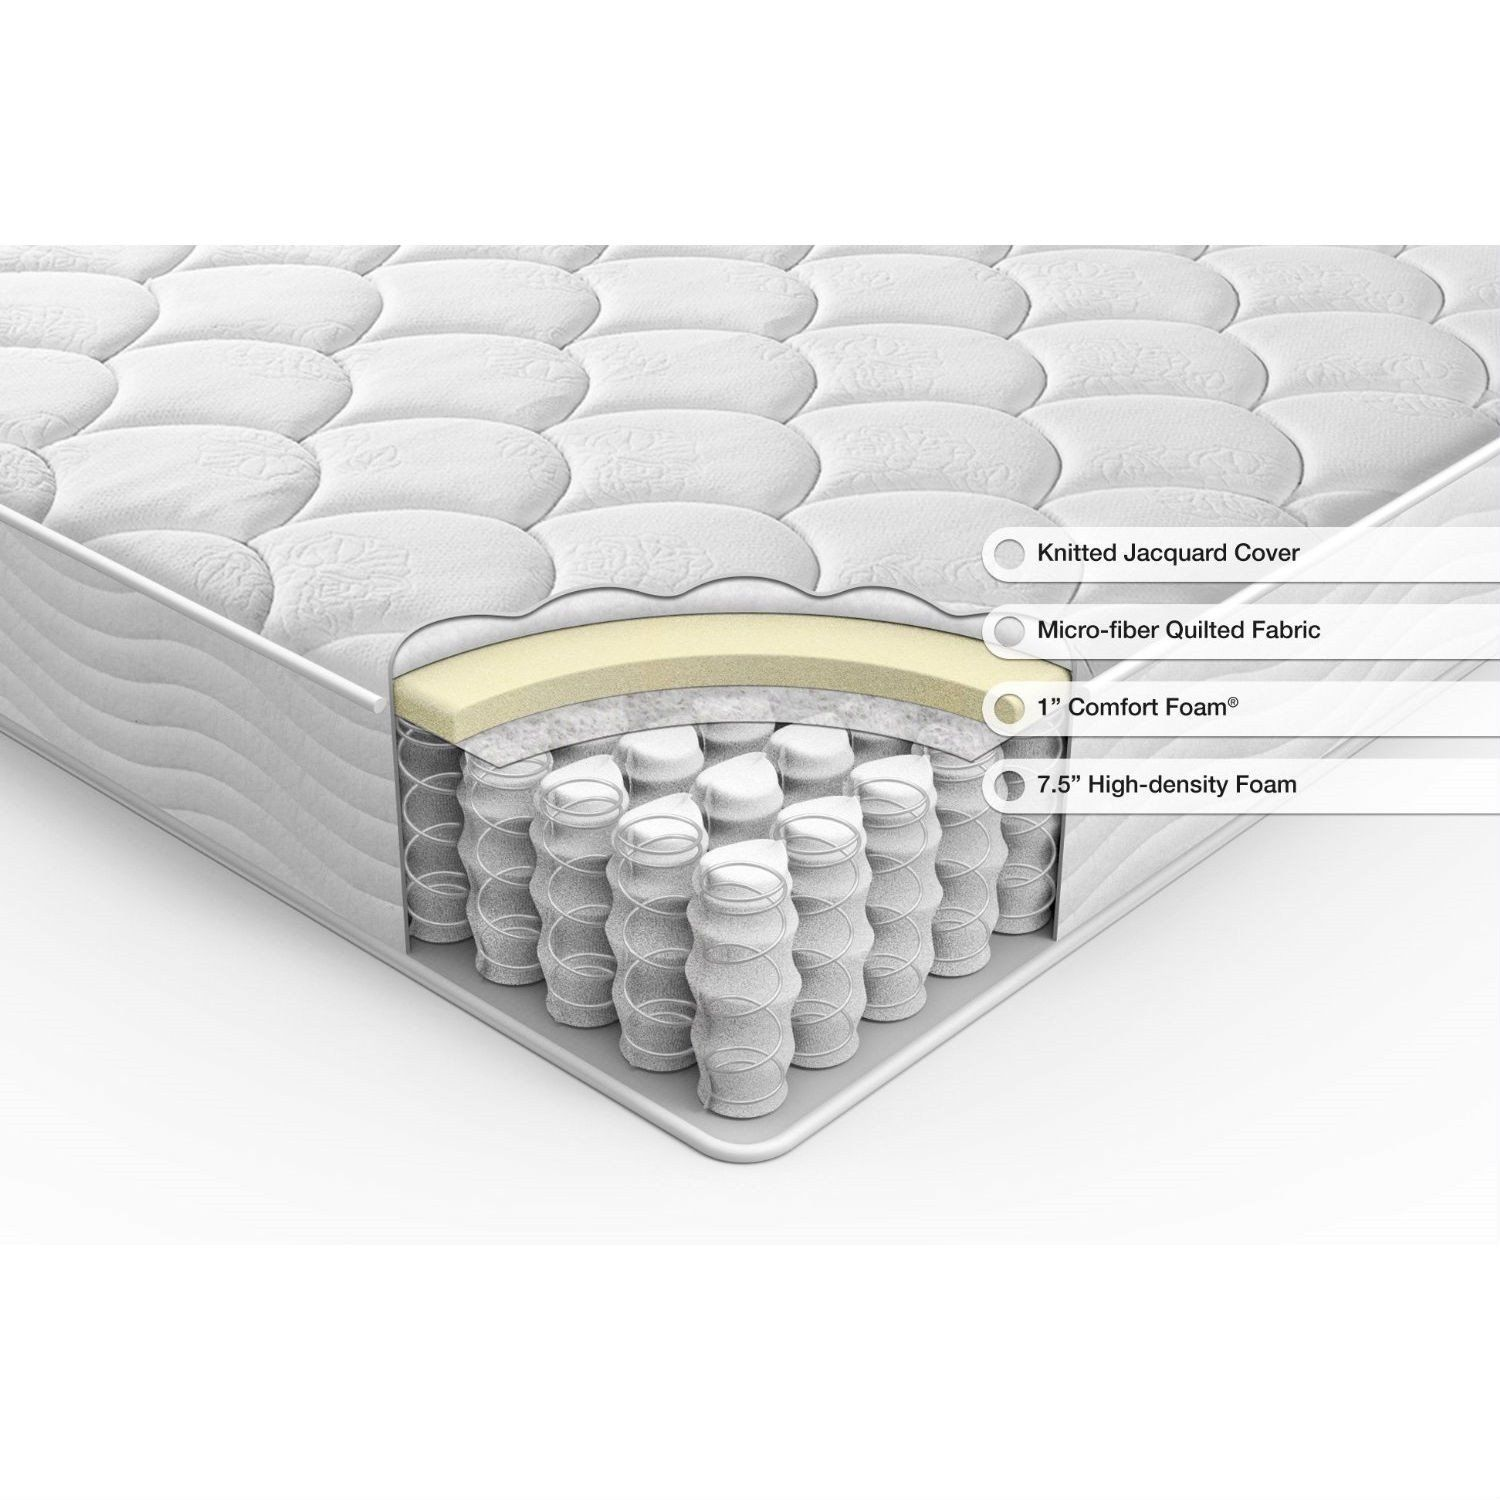 this queen size 8 inch pocketed spring mattress features hundreds of